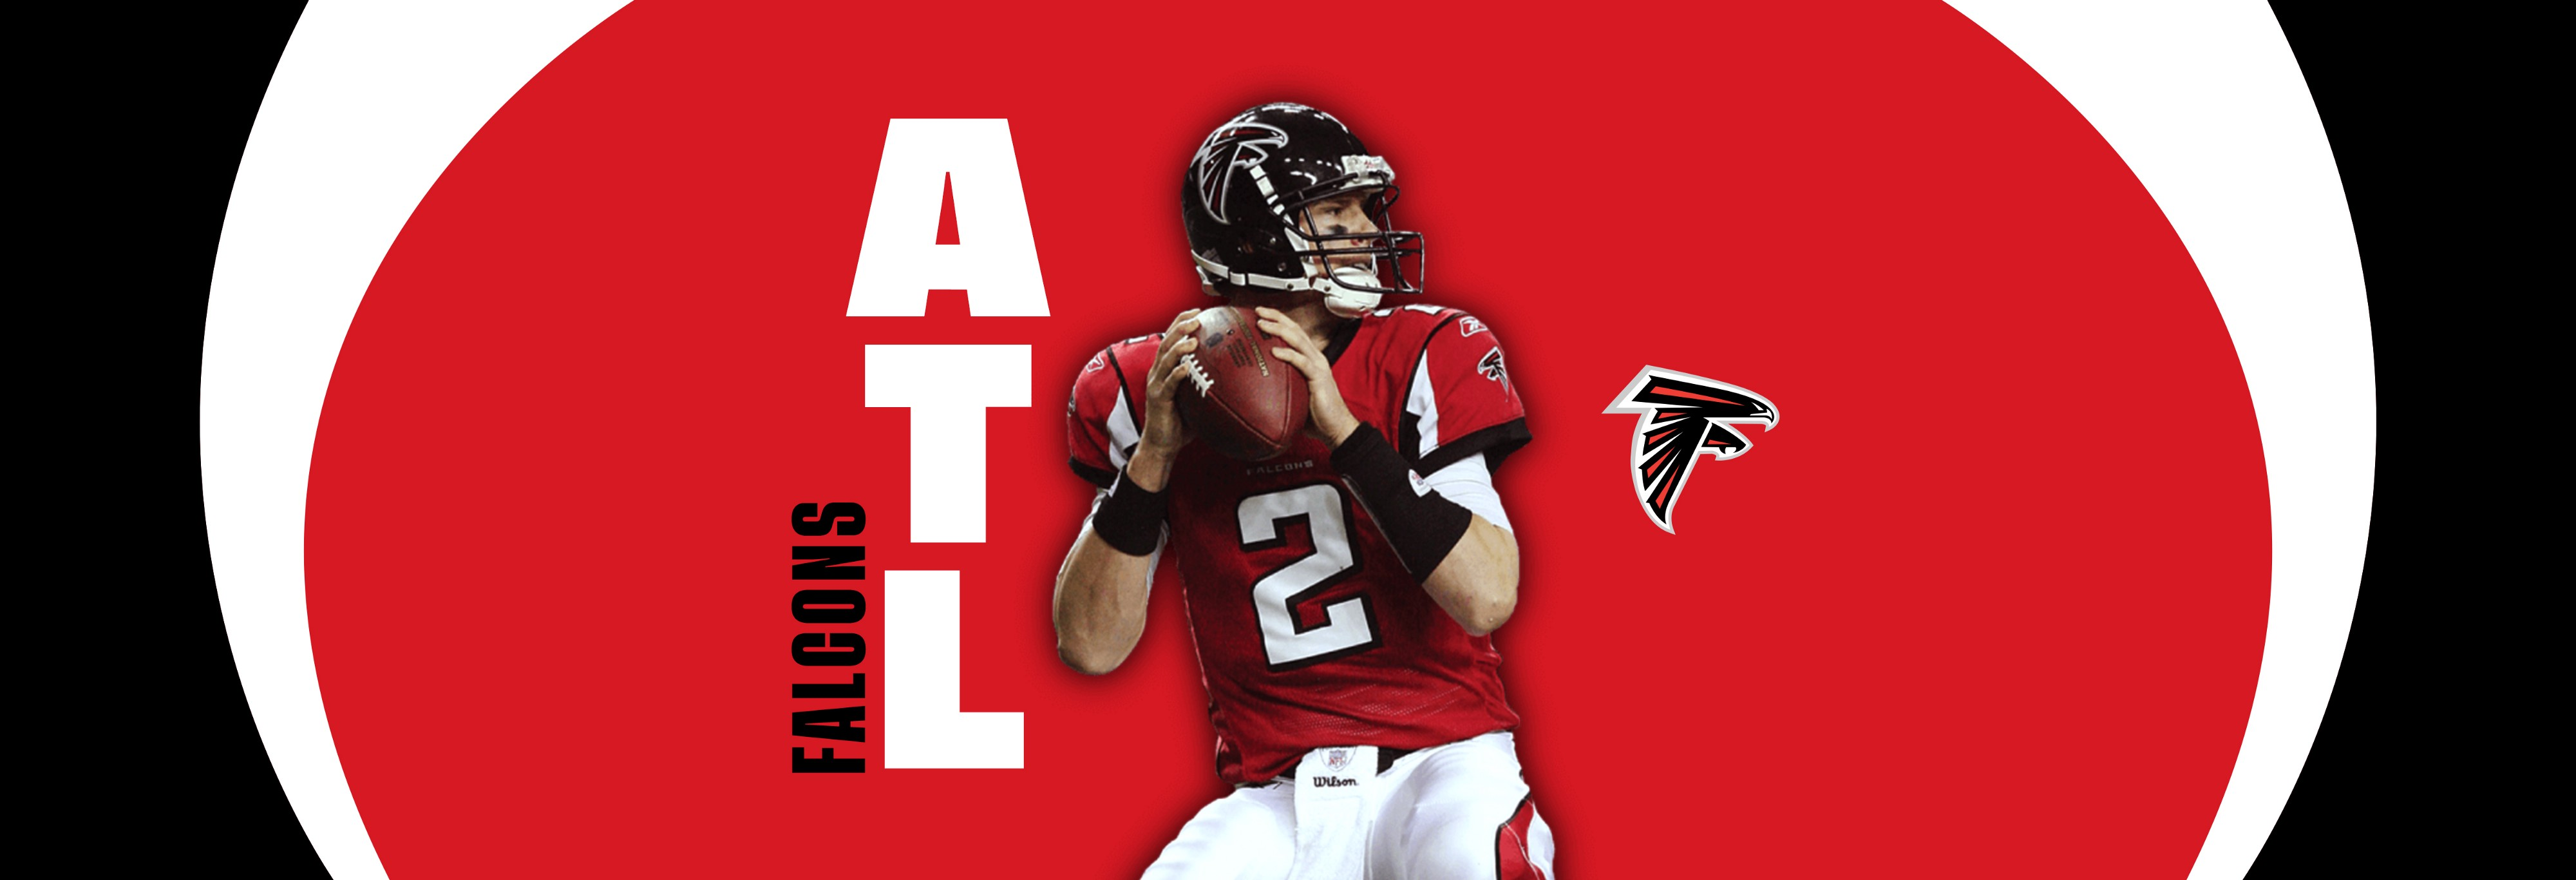 695d3971 Why The Atlanta Falcons Have The NFL's Best Uniform